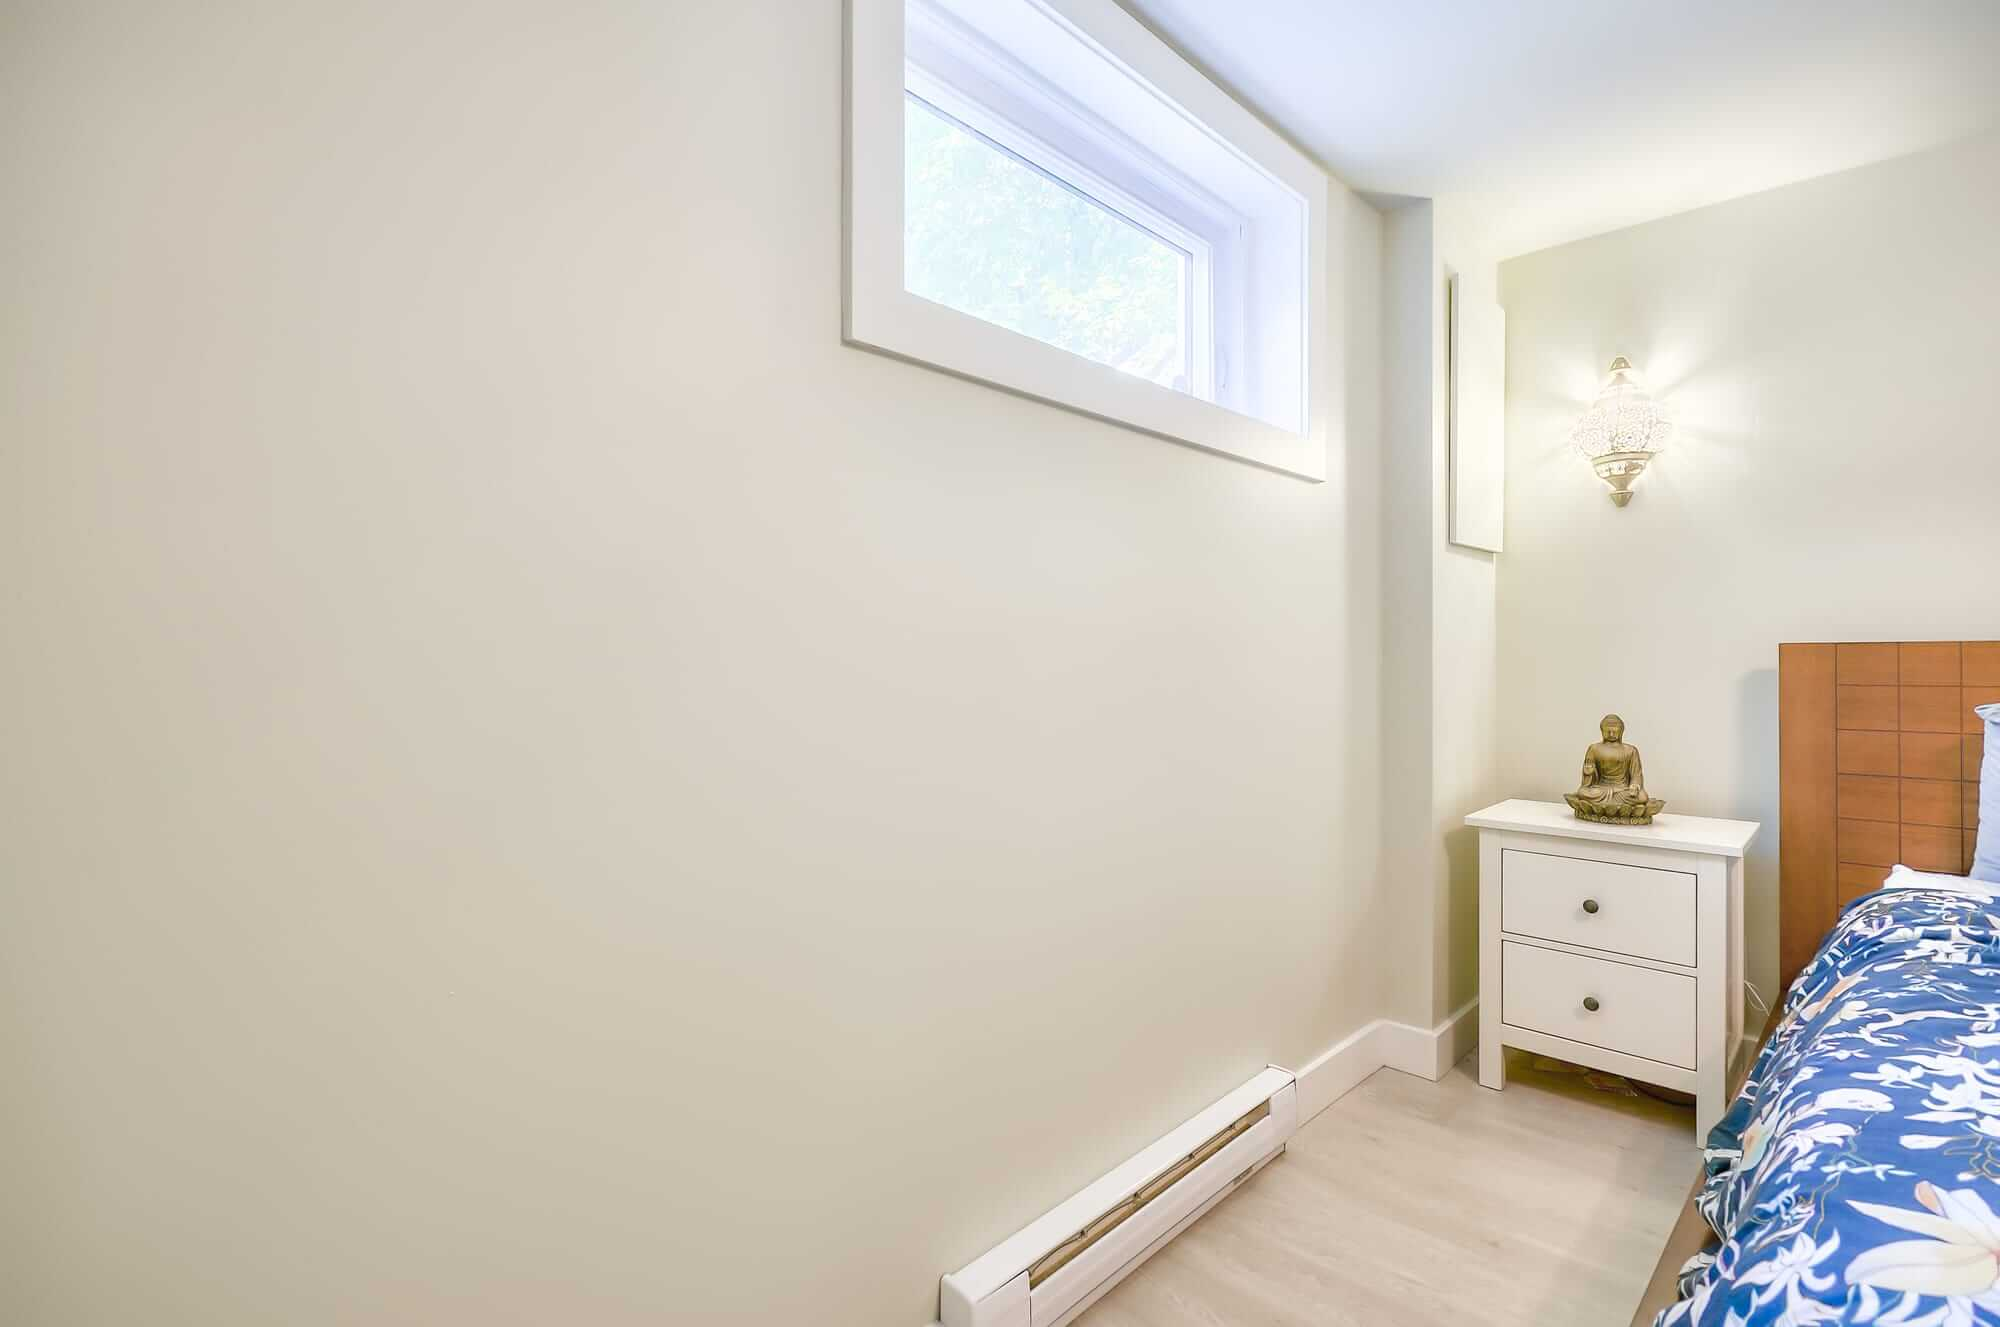 basement window with a beige wall and a white nighstand